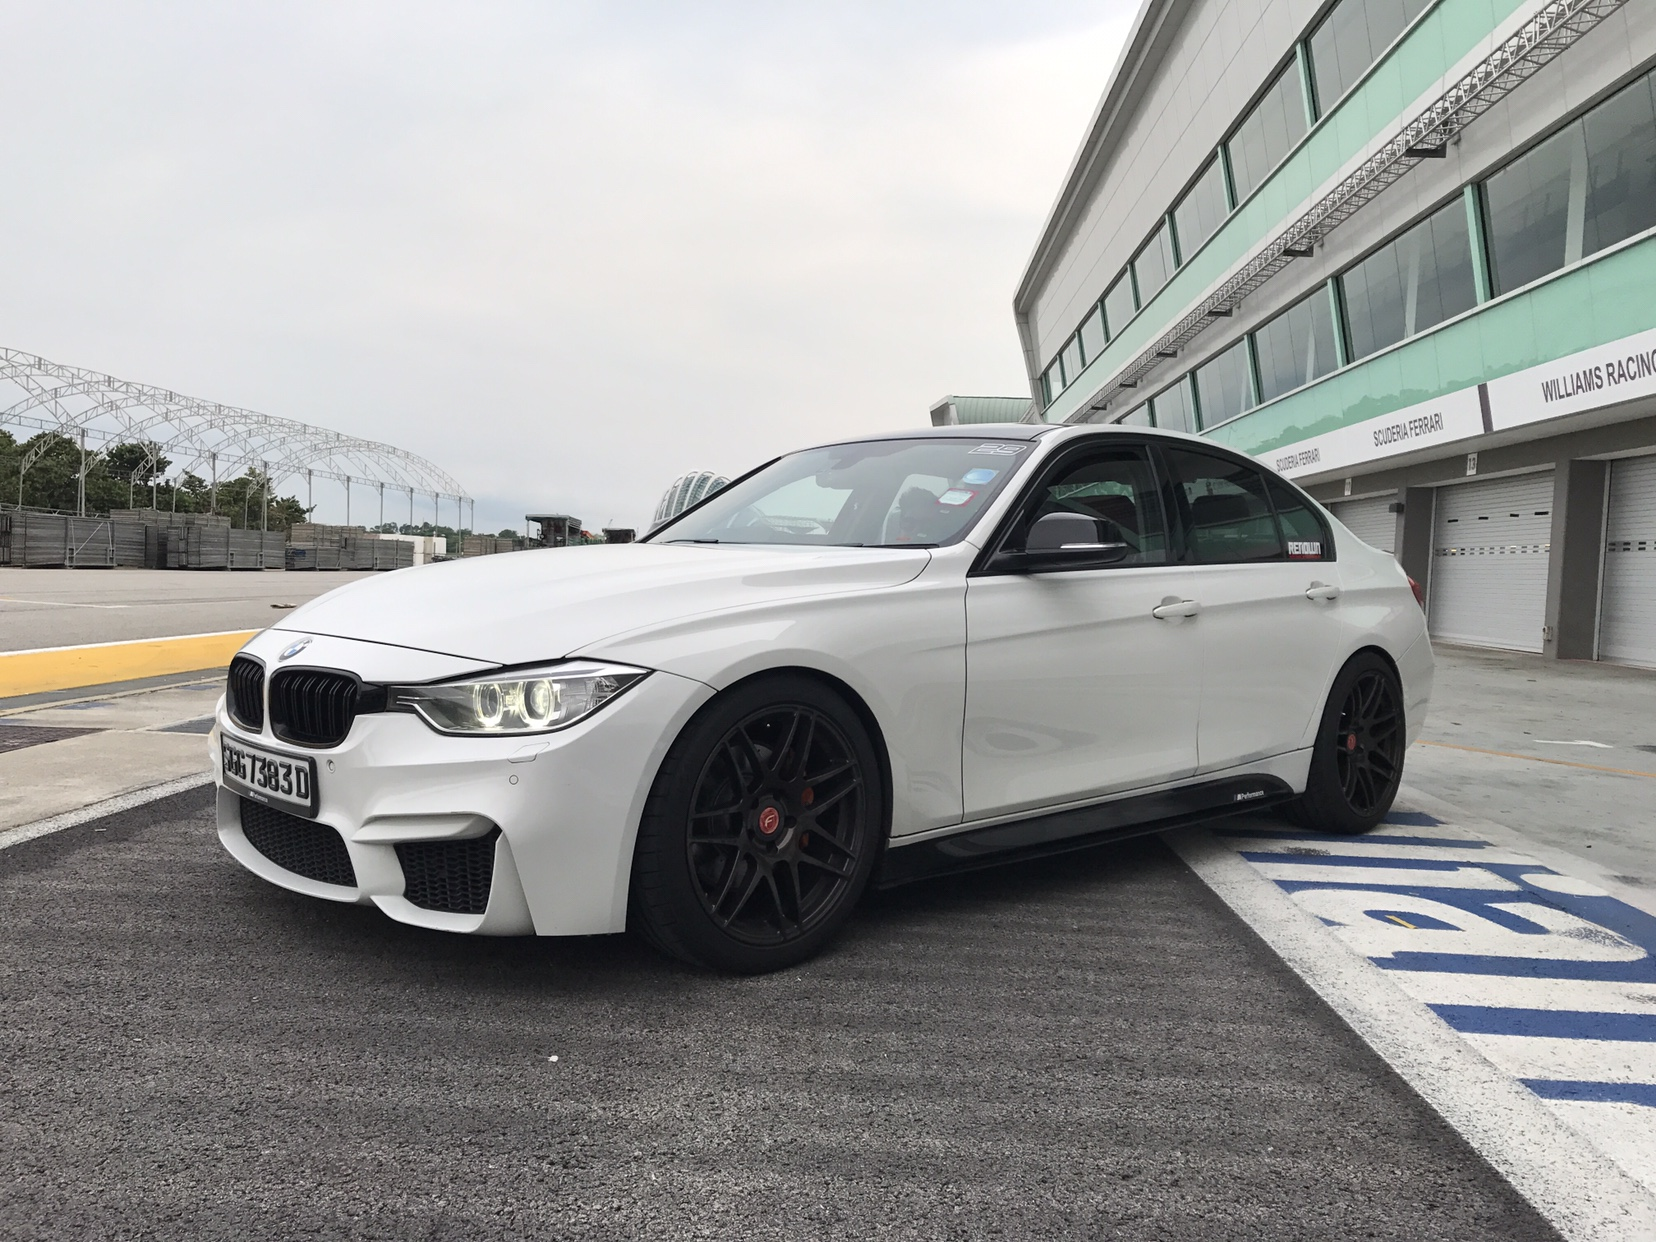 Bmw F30 335i For Sale Bmw Sg Singapore Bmw Owners Discussion Forum